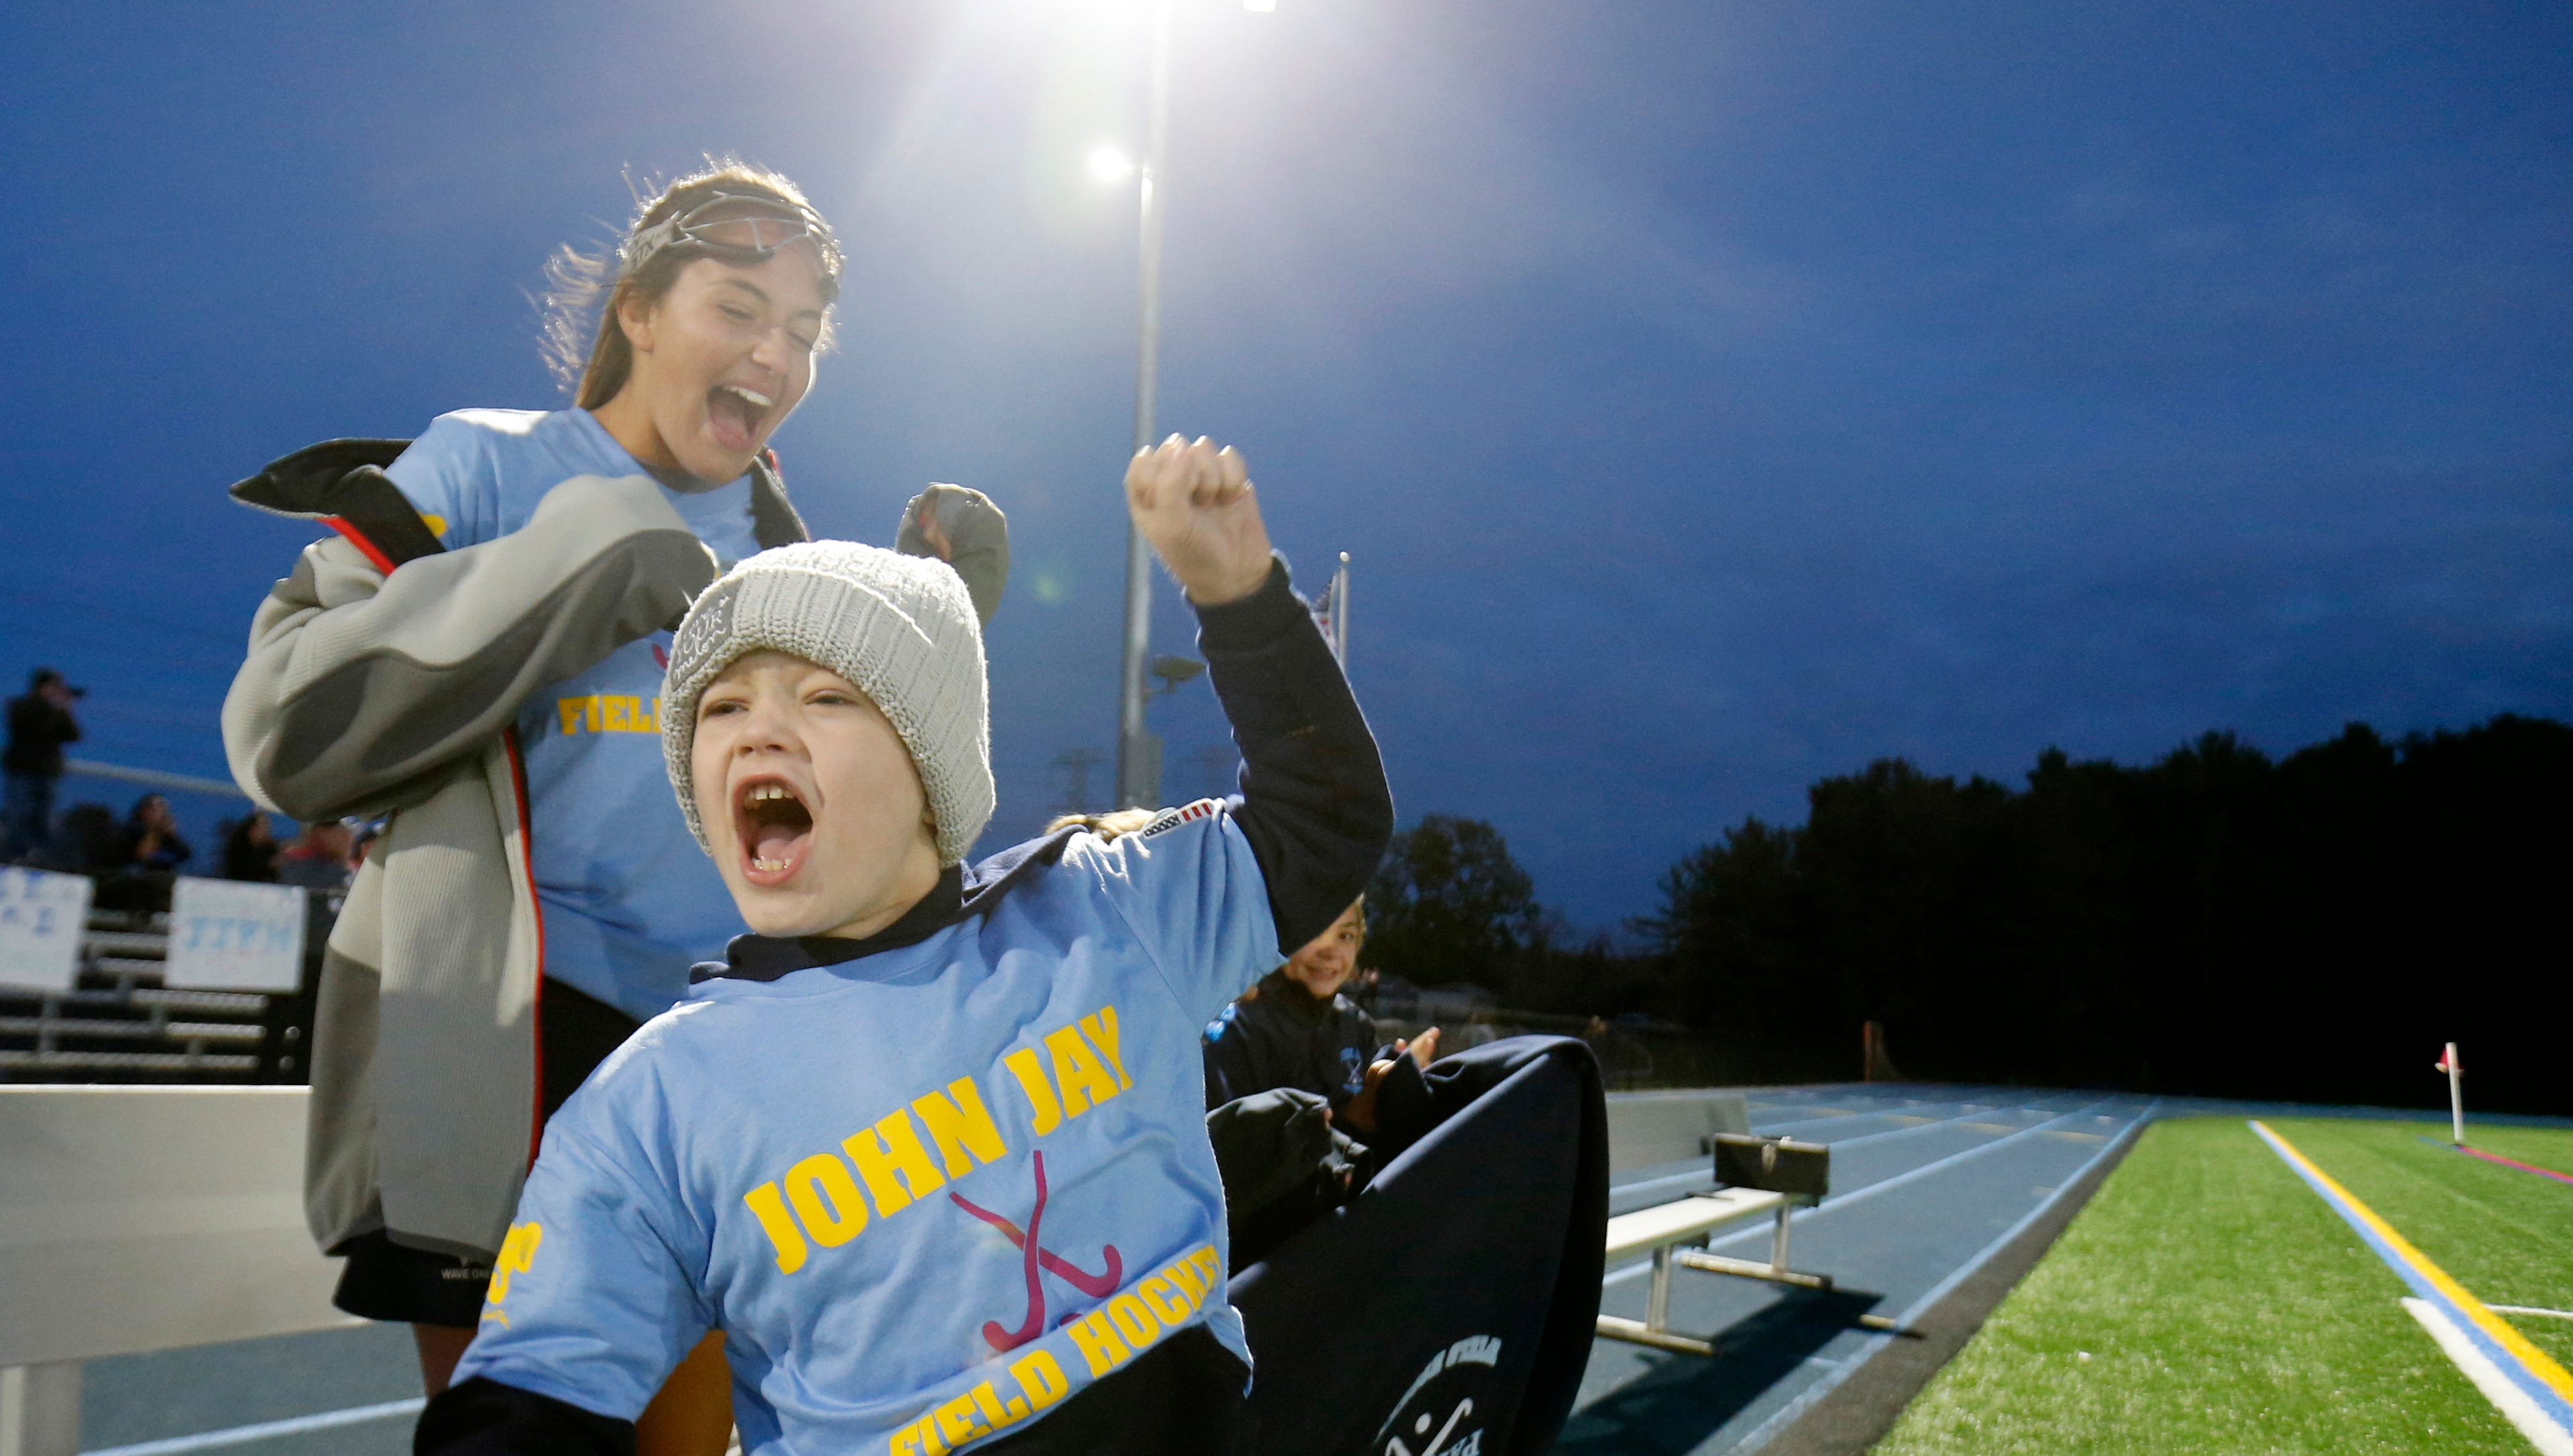 Liam Craane cheers with John Jay field hockey player Adriana Olivia during to the Tuesday's game versus Arlington on October 16, 2018. John Jay's field hockey team adopted Craane as part of the Friends of Jaclyn a charity that pairs children fighting cancer with local sports teams.